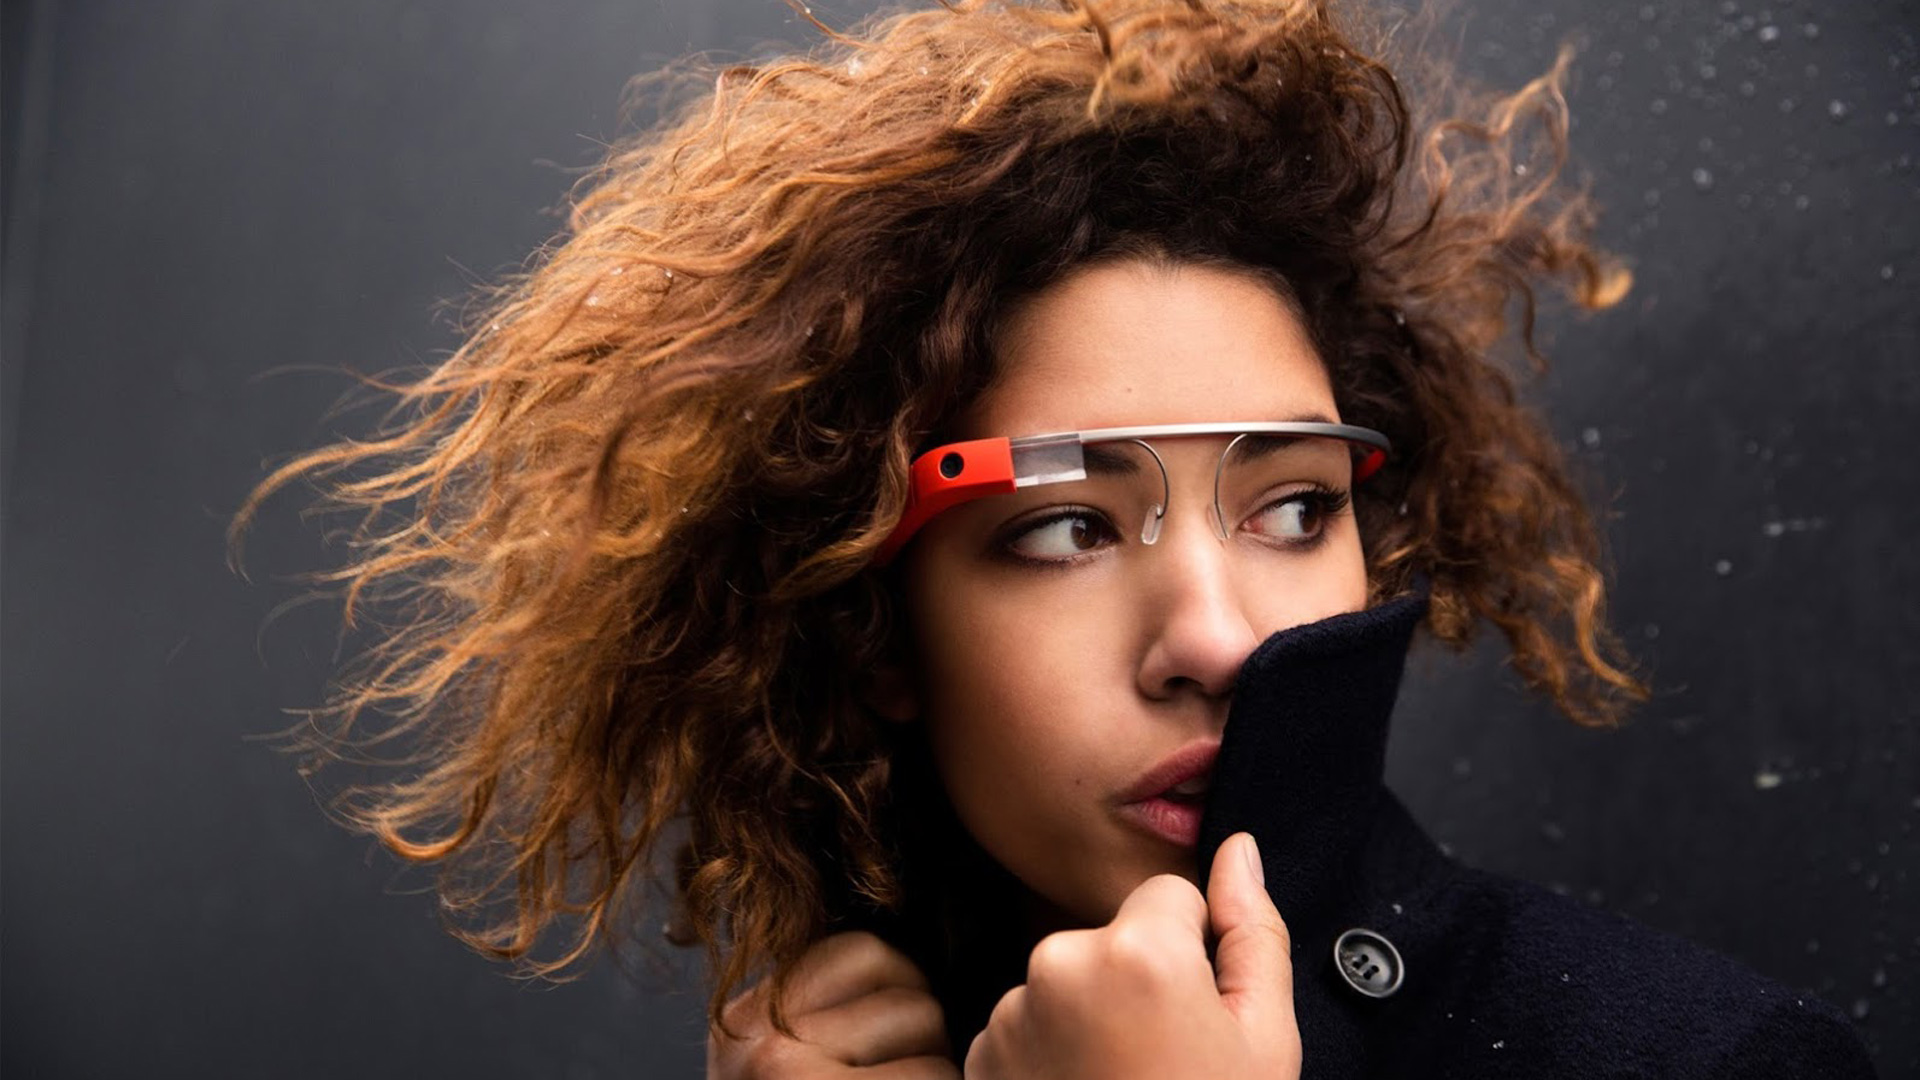 Model introducing Google glass